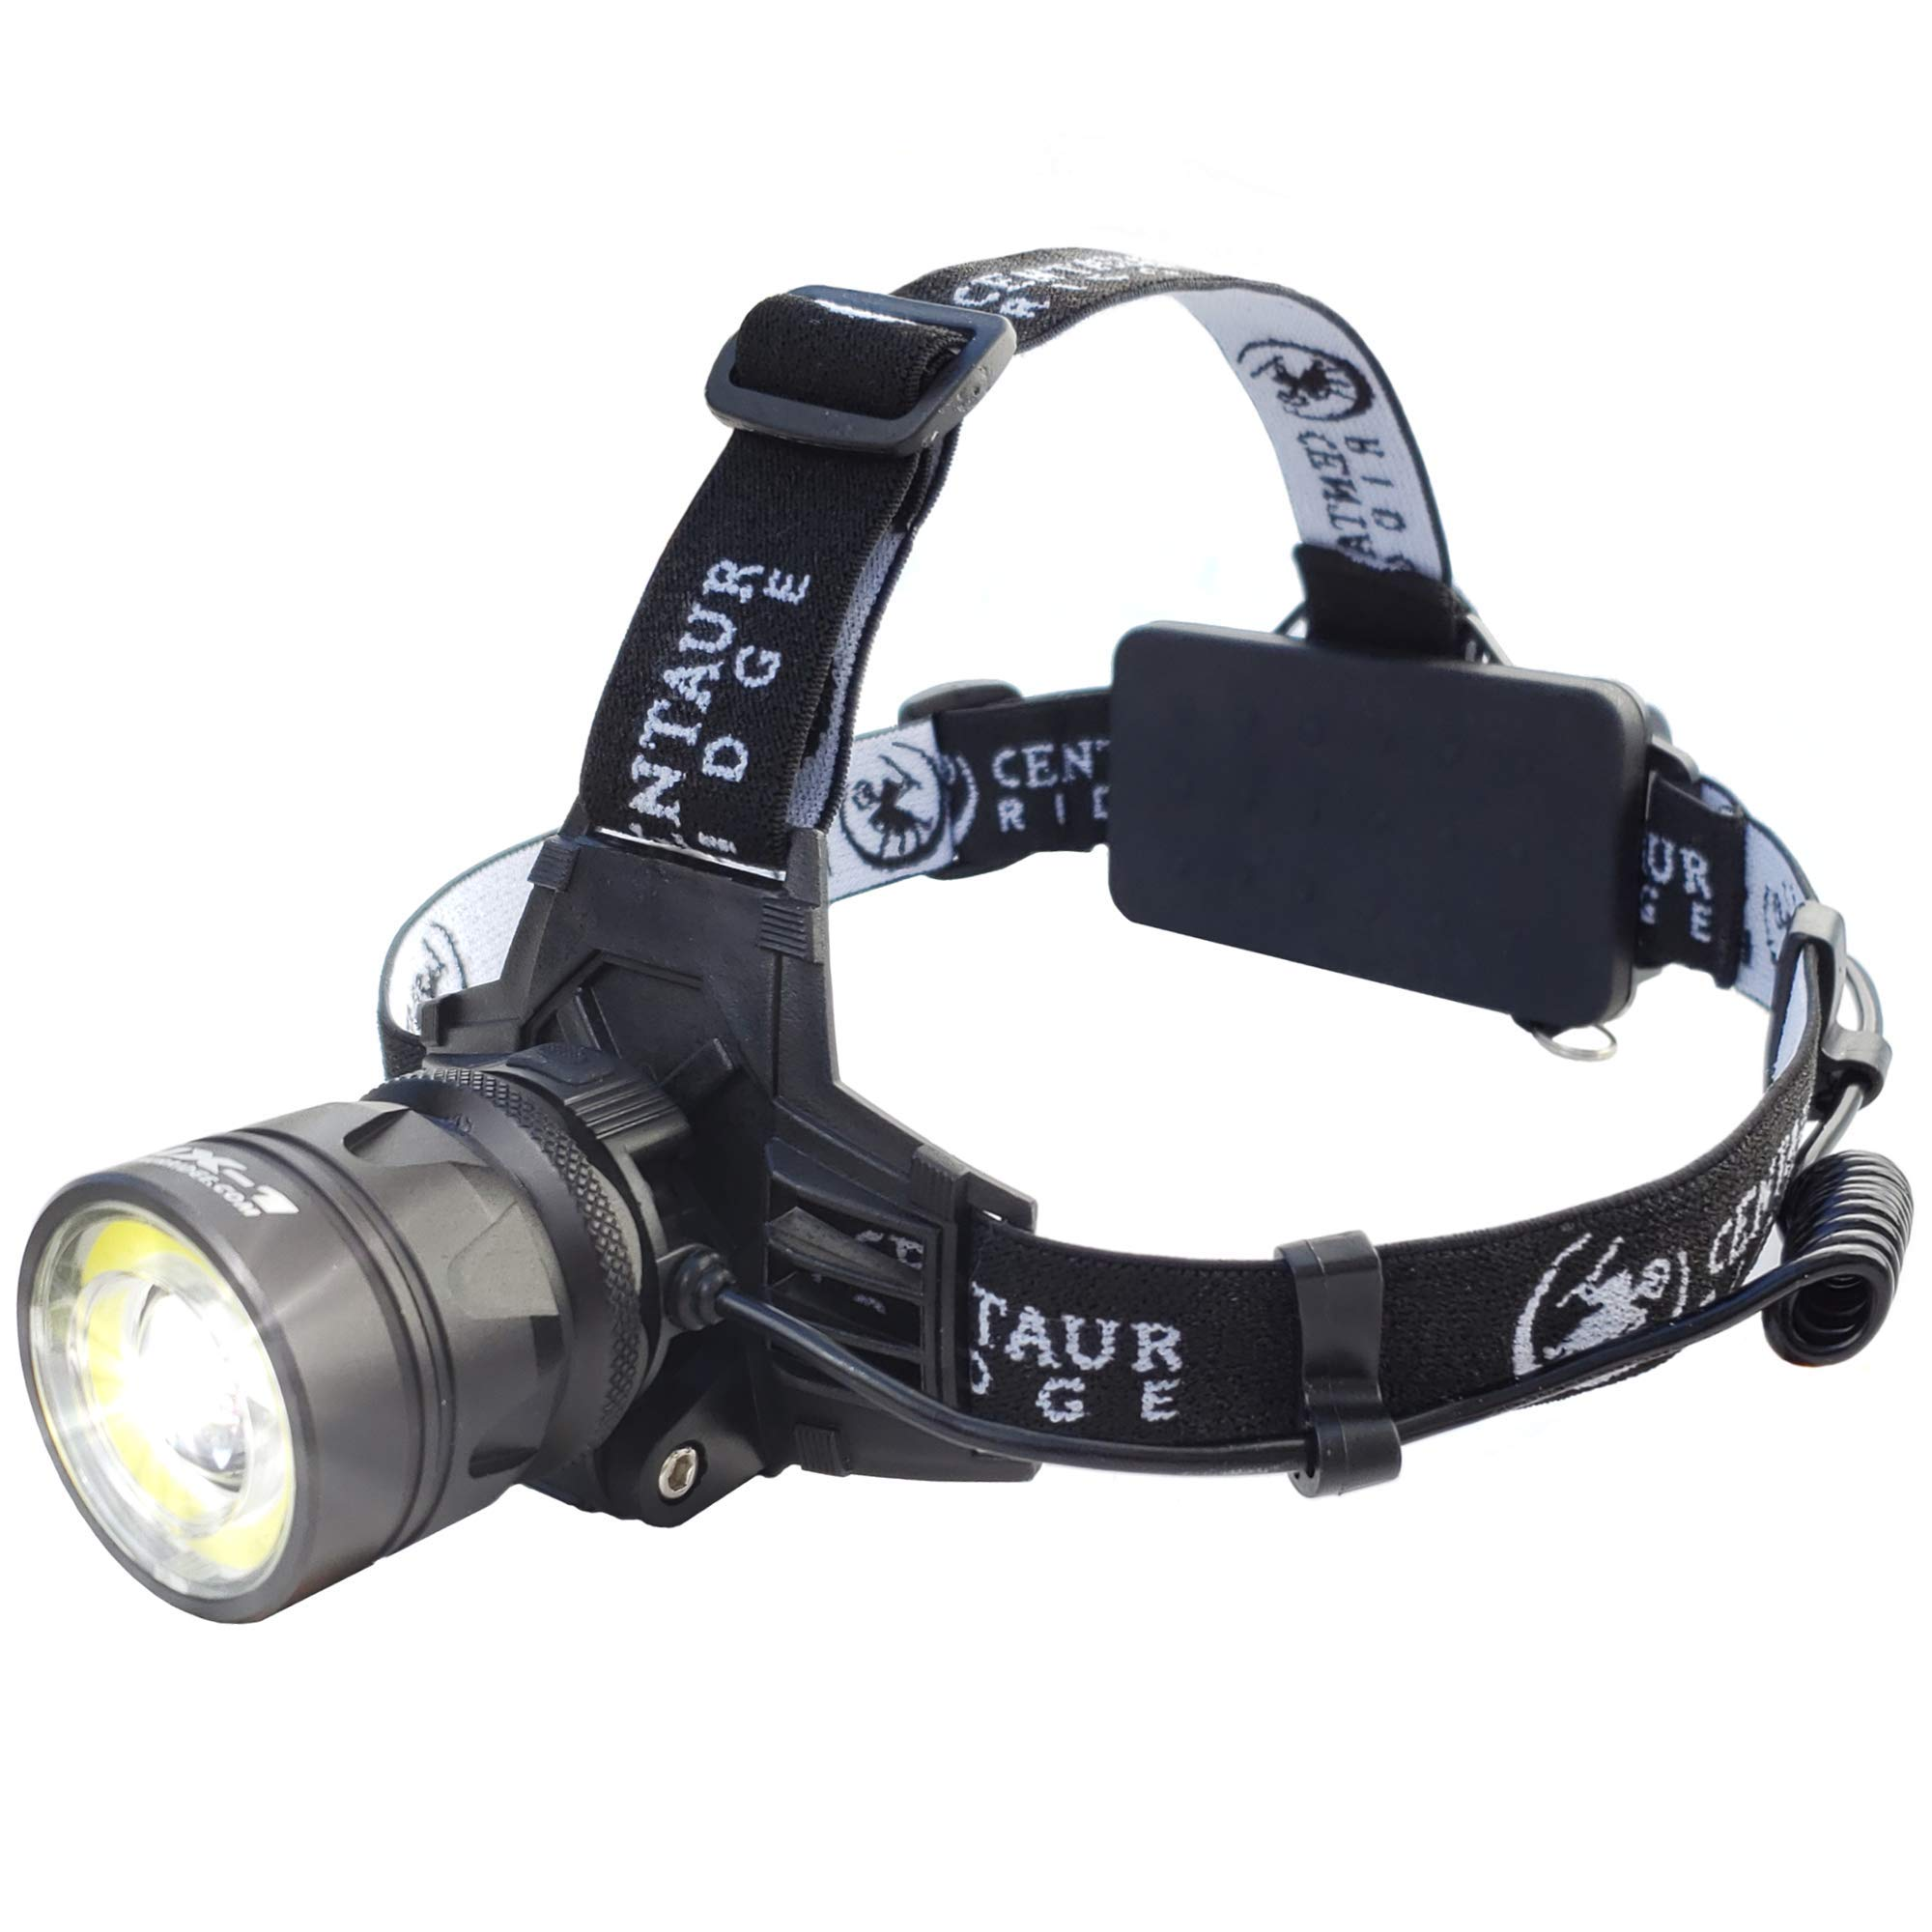 Centaur Ridge Headlamp - Xtreme Bright, 1000 Lumen CREE LED, Zoomable, USB Rechargeable | Best Flashlight for Camping, Hiking, Running, Work